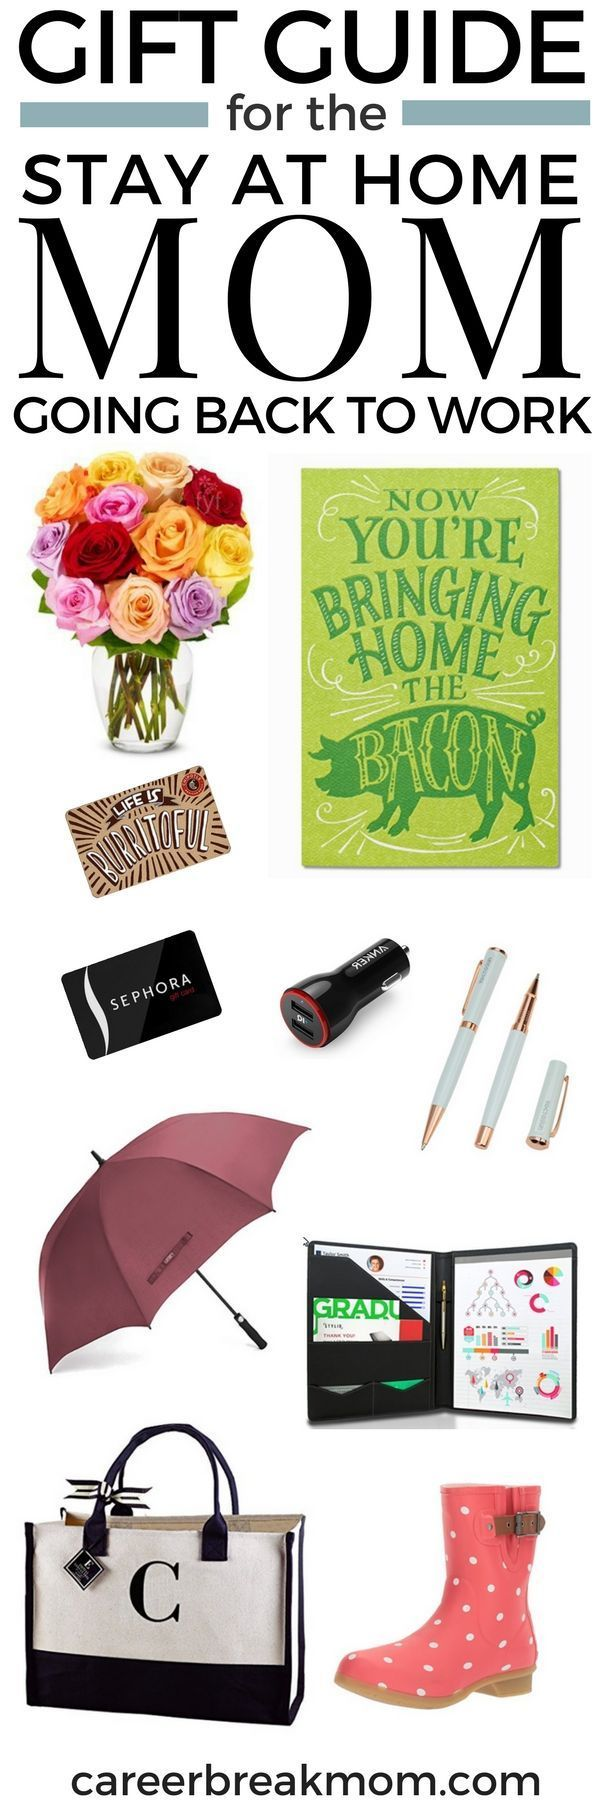 Gift Guide for the Stay at Home Mom Going Back to Work | Gift and ...